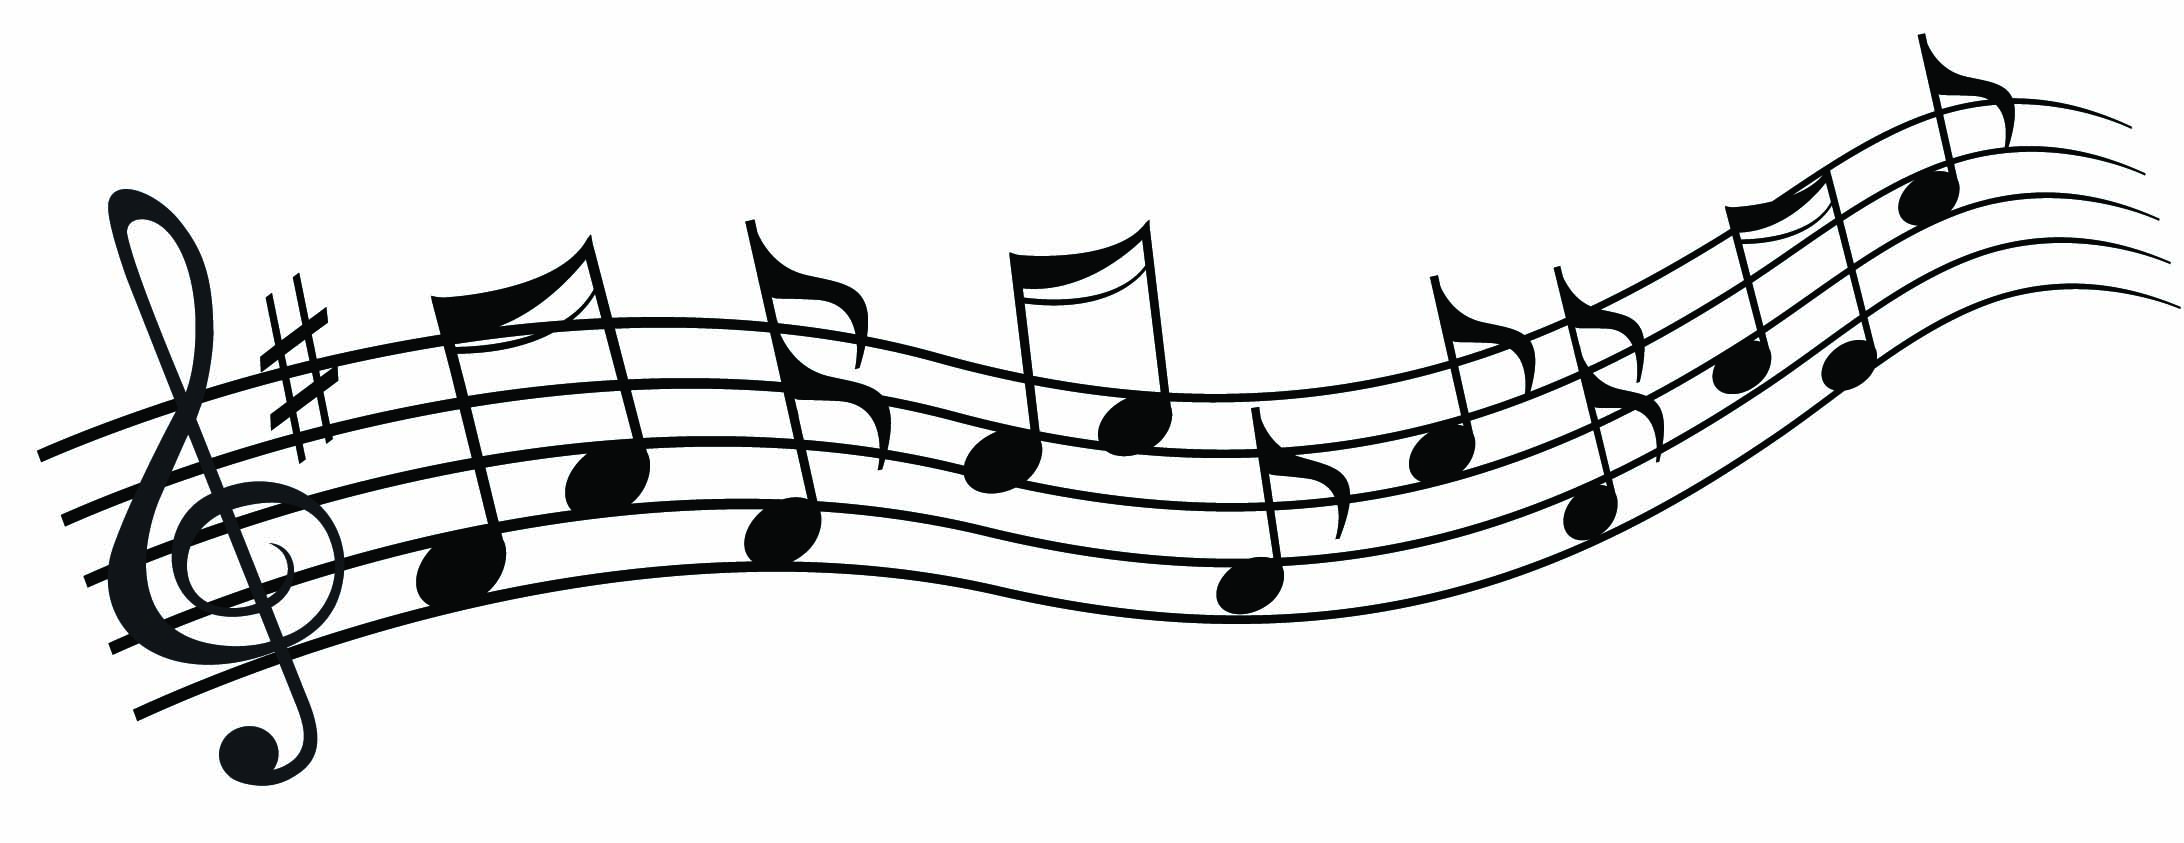 Free music clip art images 2